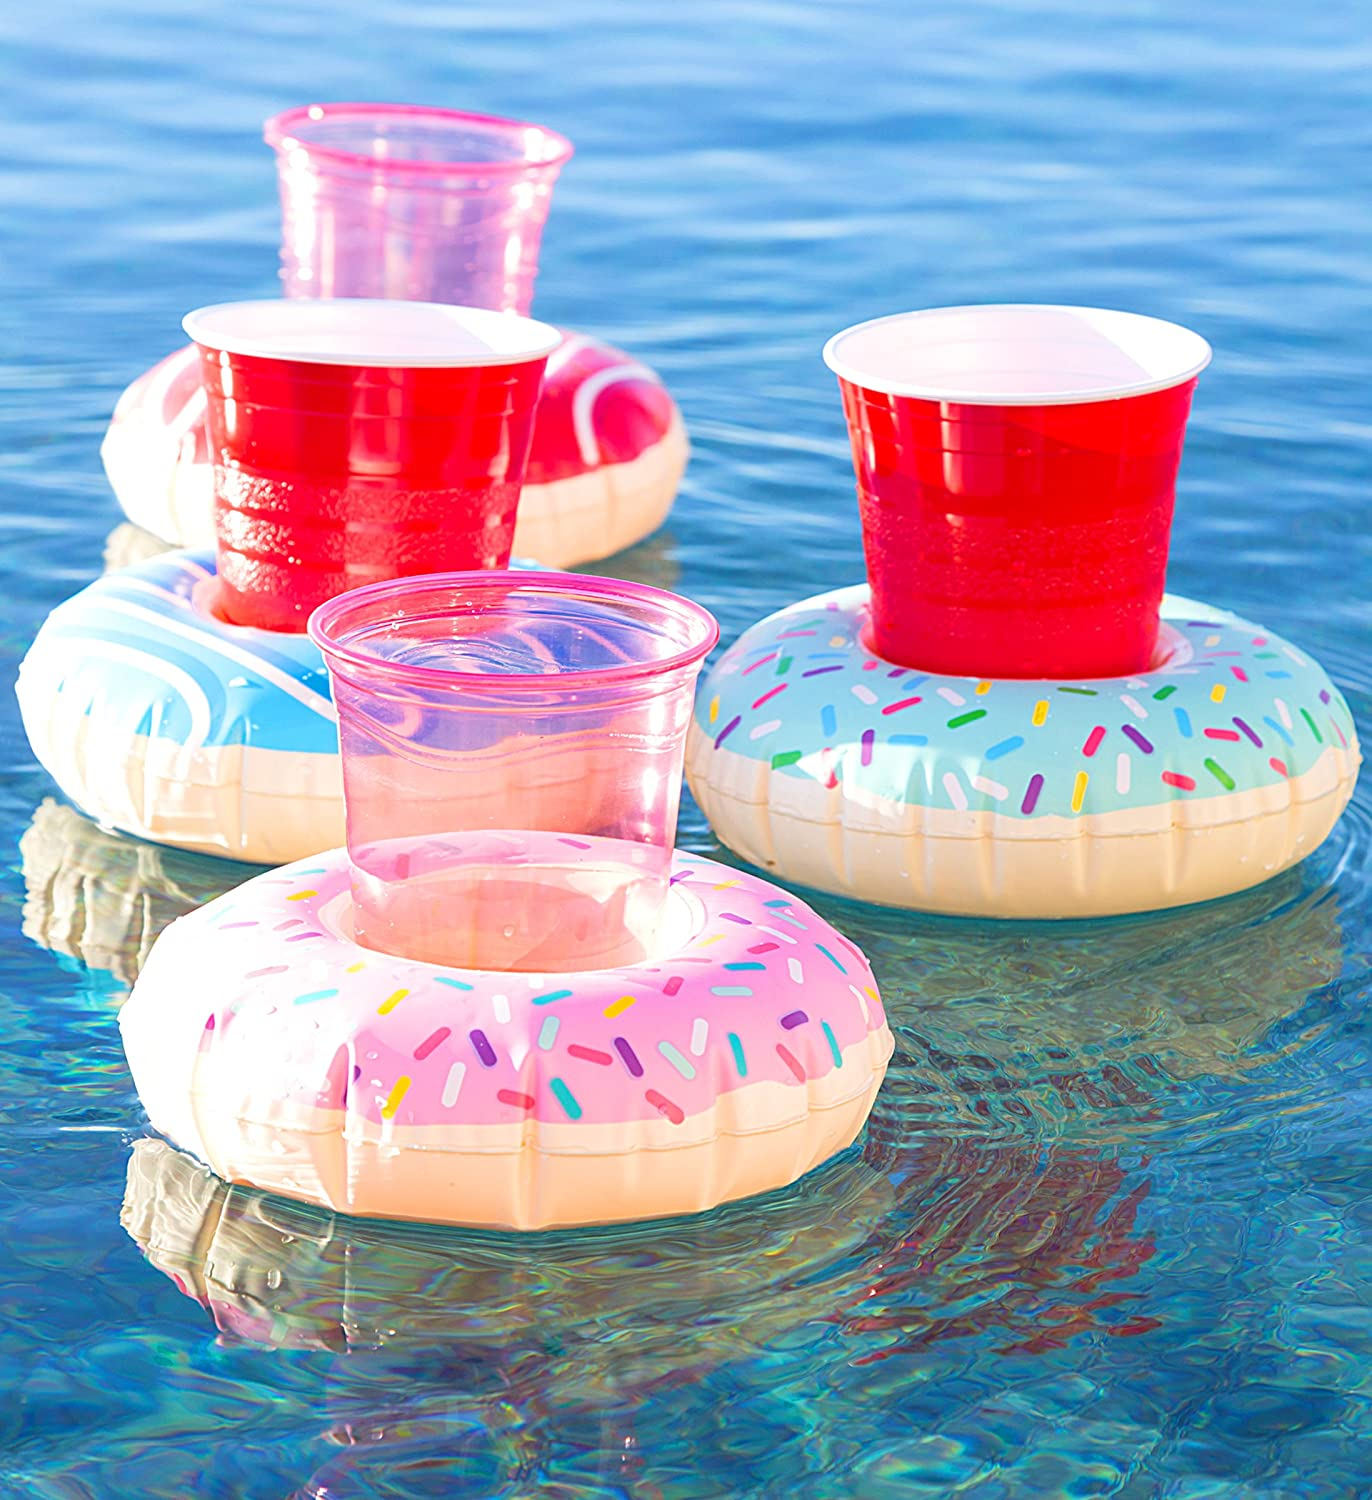 CoTa Global Pool Party – Funny Delectable Frosted Donut Inspired Inflatable Ring Drink Holder - Set of 4 - for The Beach, Pool Party - Heavy Duty - UV...